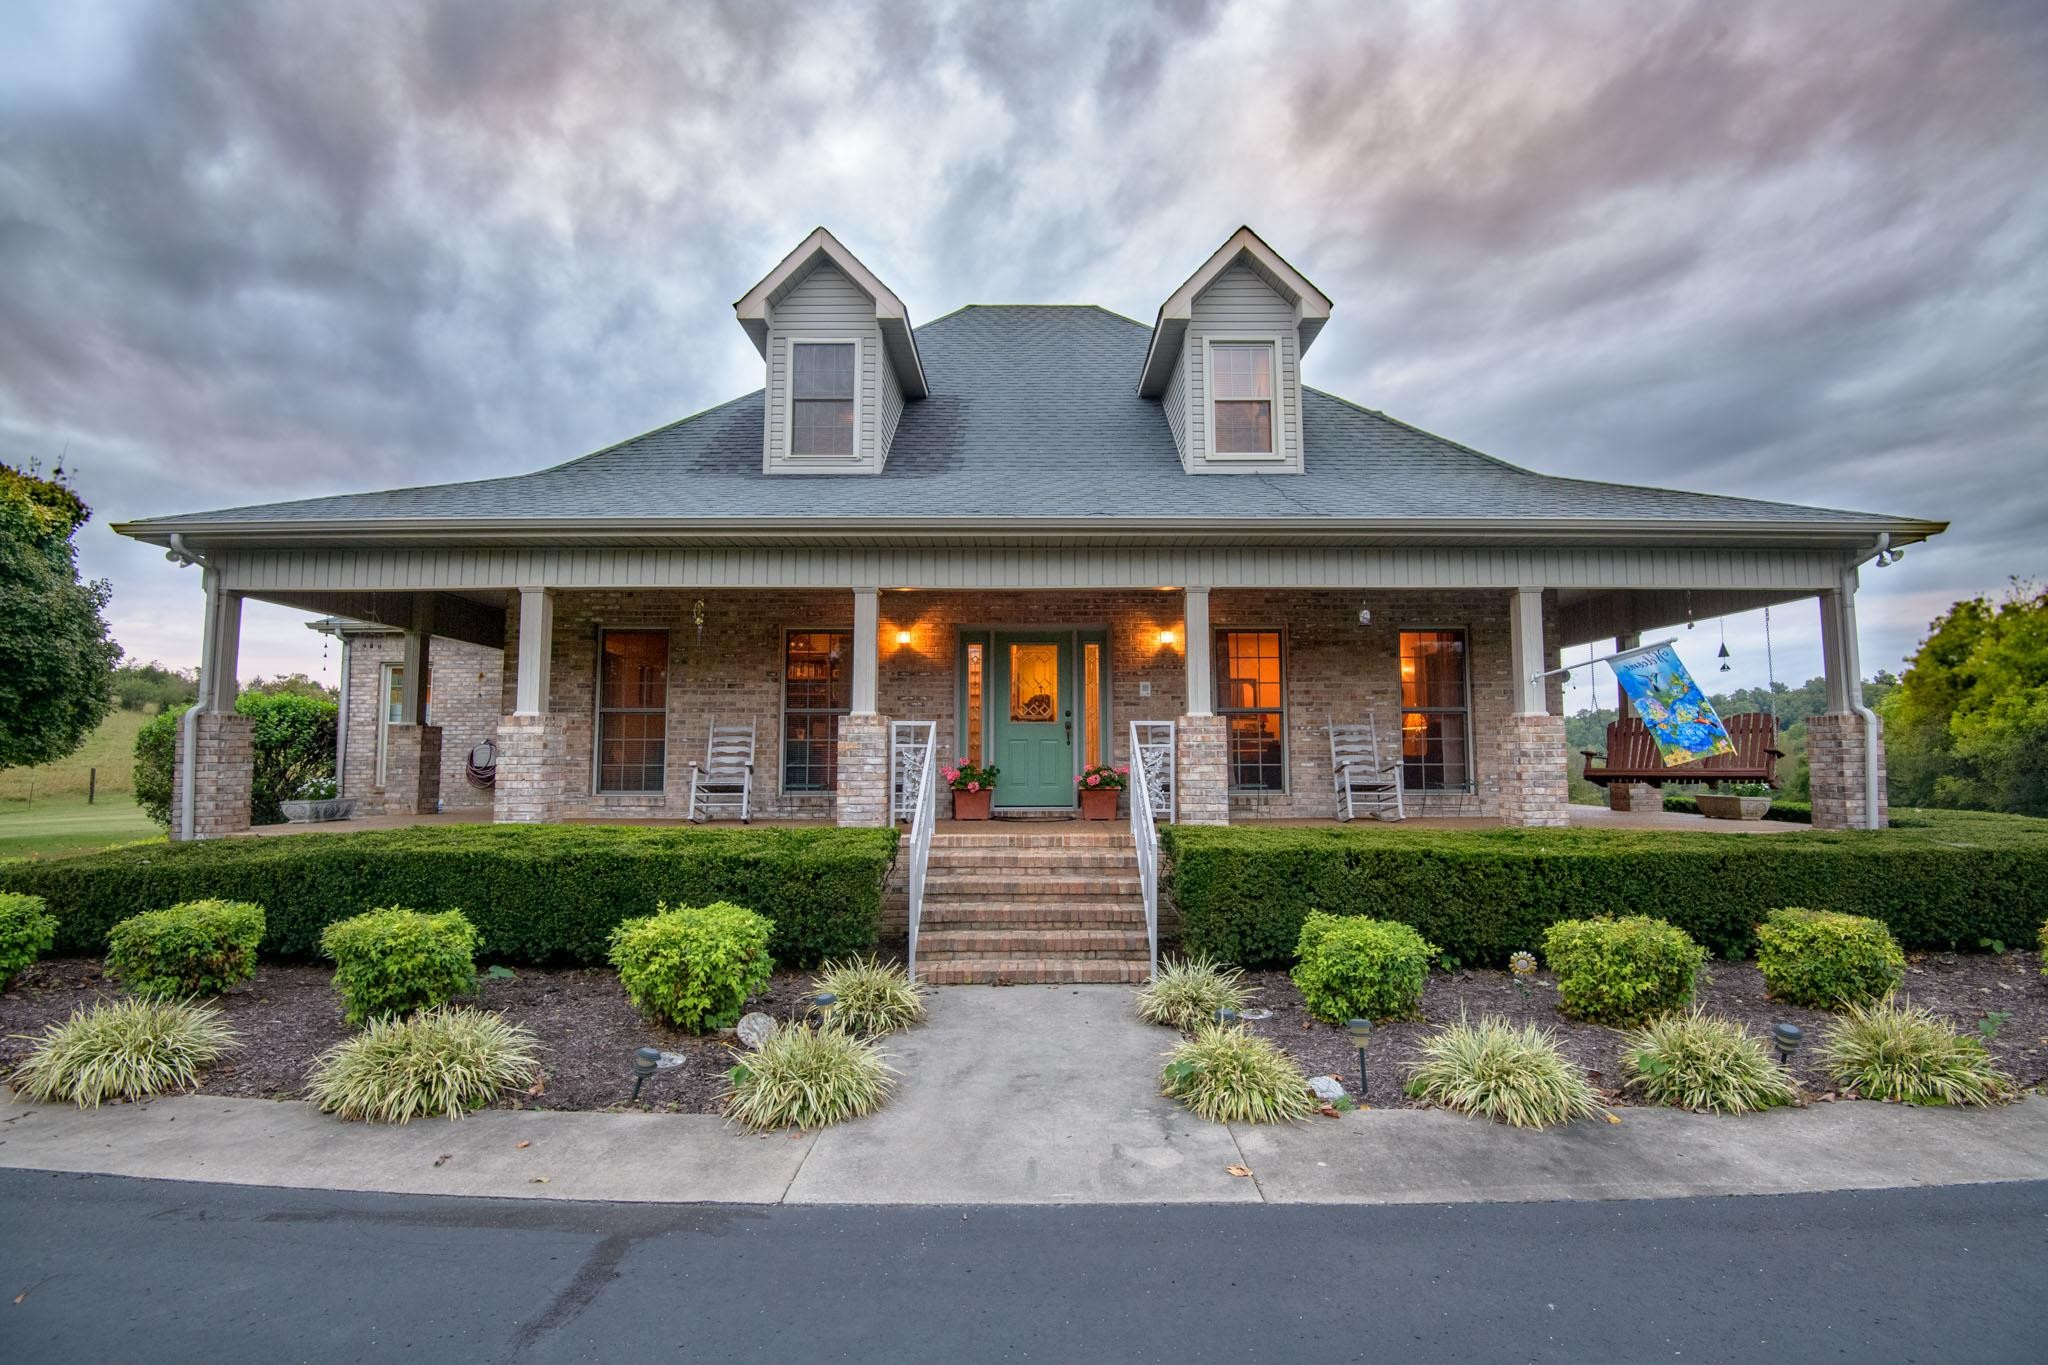 195 Womble Rd, Shelbyville, TN 37160 - Shelbyville, TN real estate listing